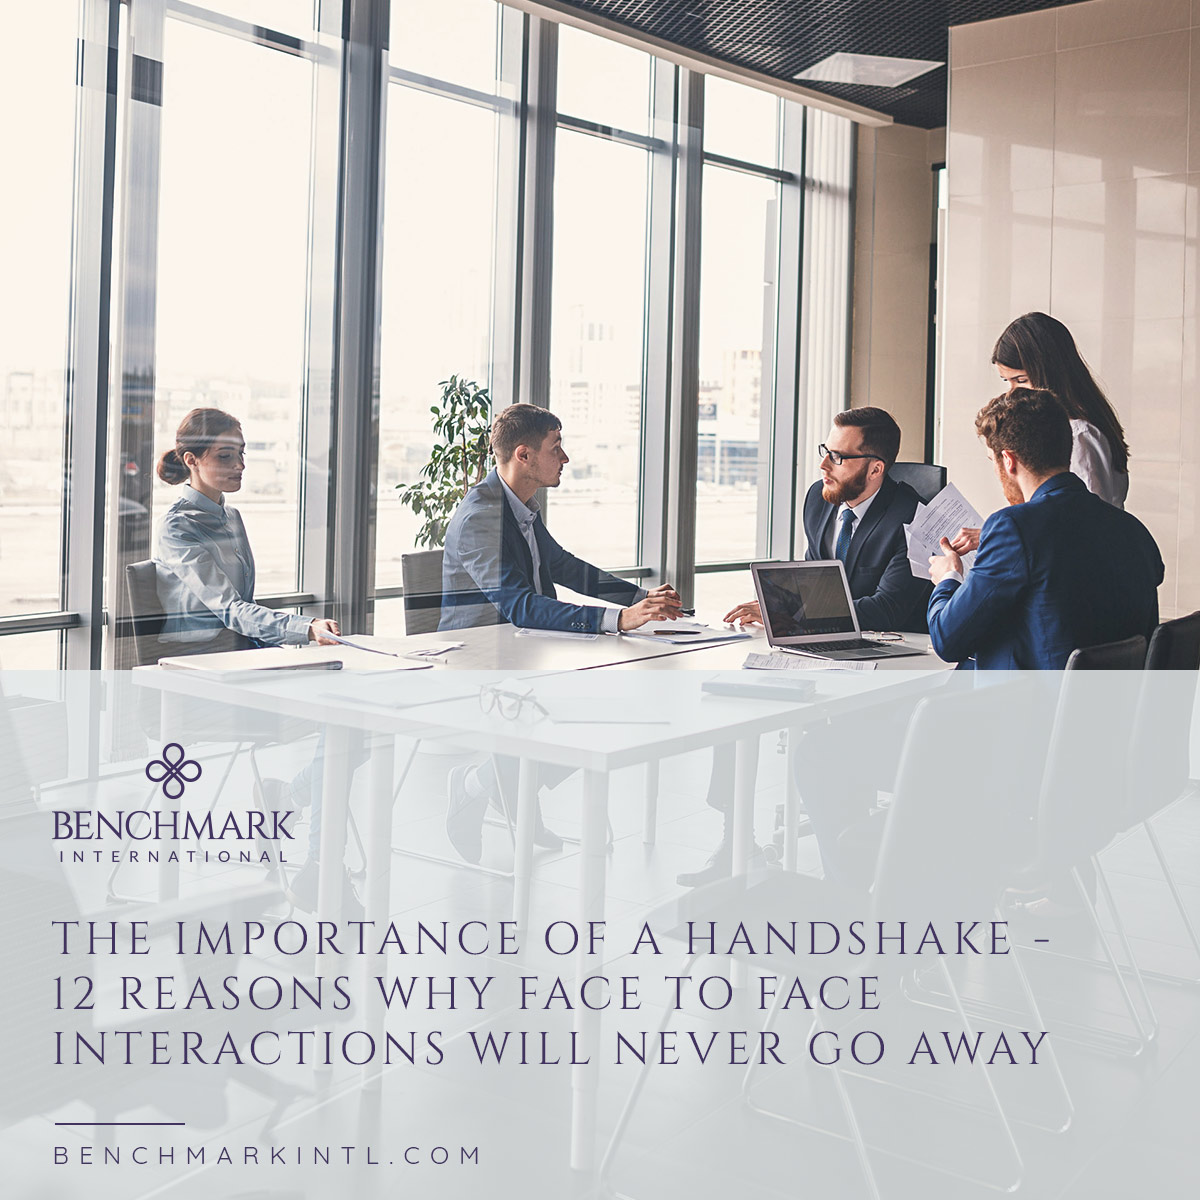 The_Importance_of_a_Handshake_12_Reasons_Why_Face_to_Face_Interactions_Will_Never_Go_Away_Social(4)